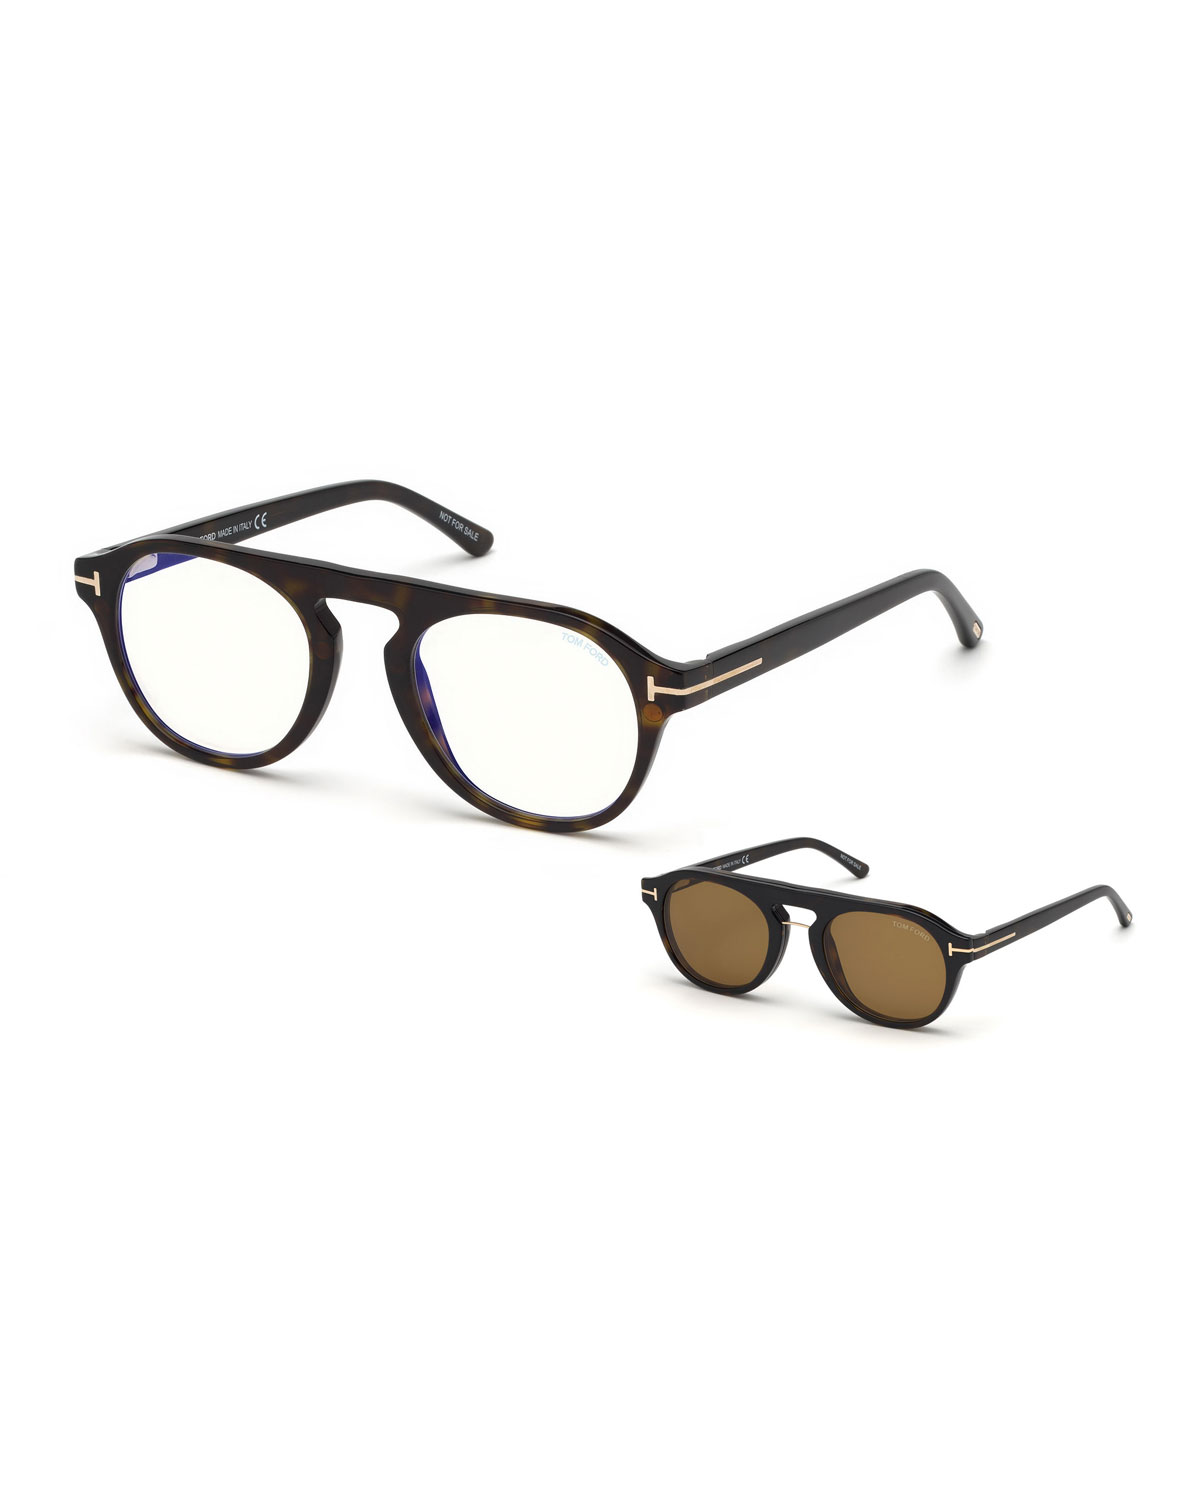 84a0b936 Men's Round Optical Glasses w/ Magnetic Clip On Blue-Block Shade